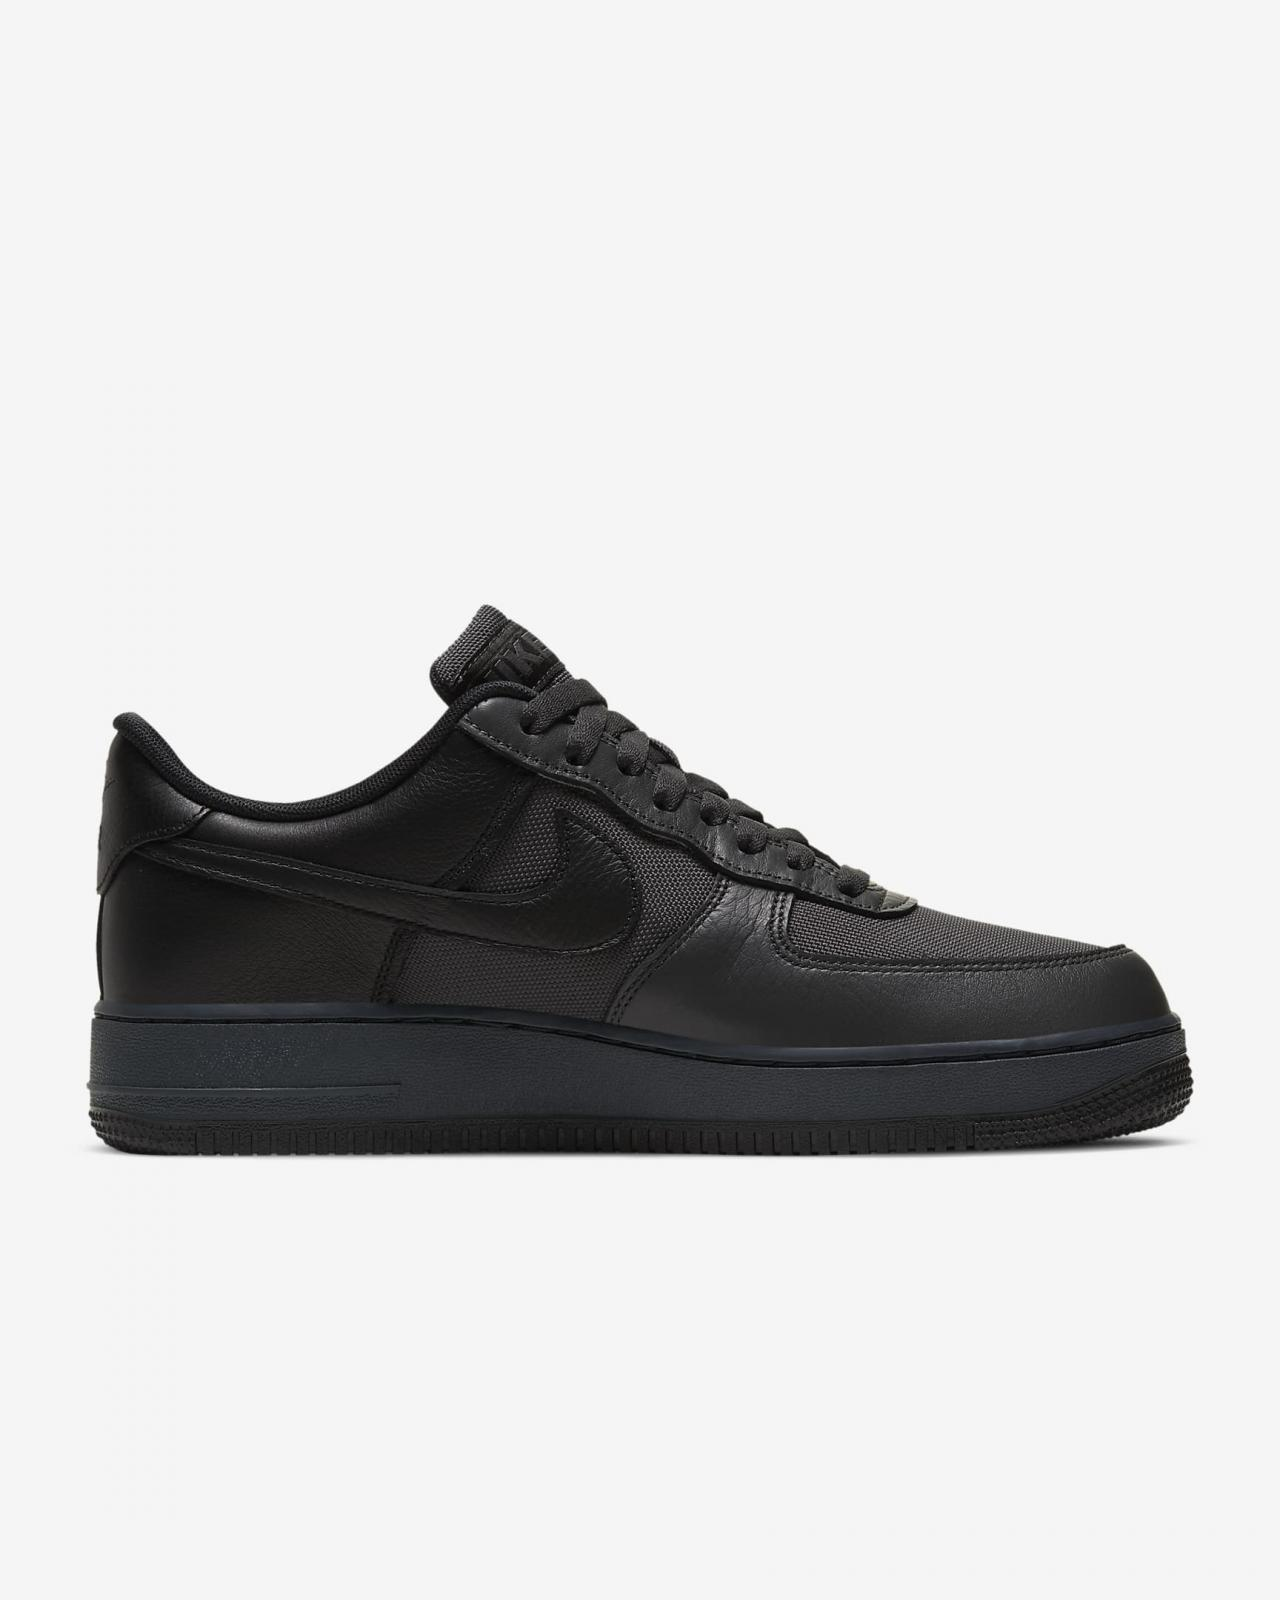 Nike Sportswear推出全新煤黑/微灰/黑色Air Force 1 GTX